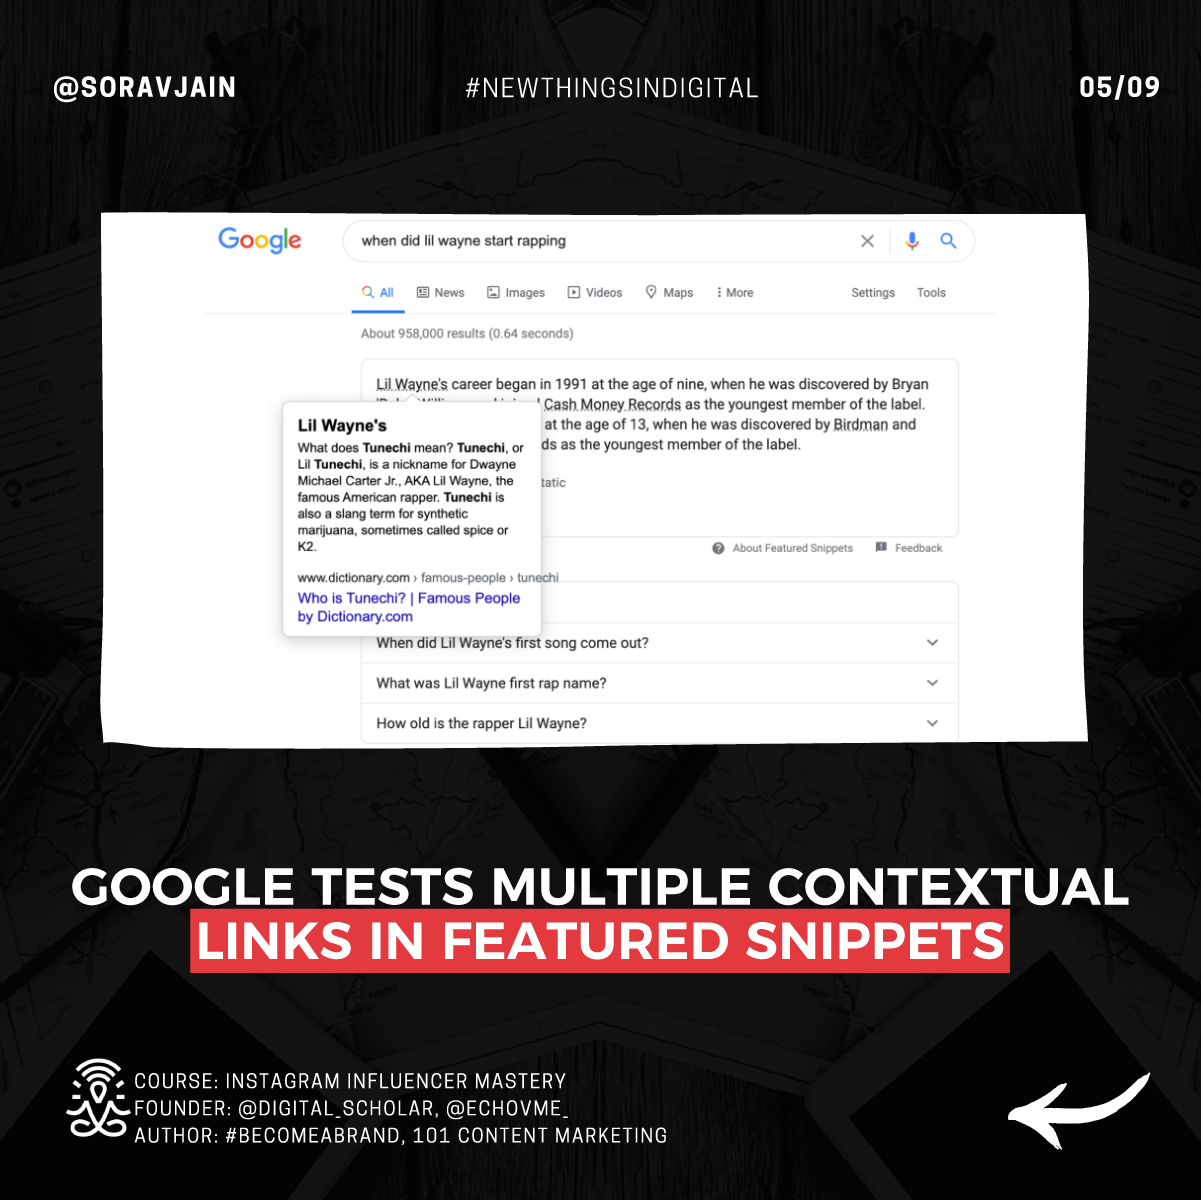 Google tests multiple contextual links in featured snippets